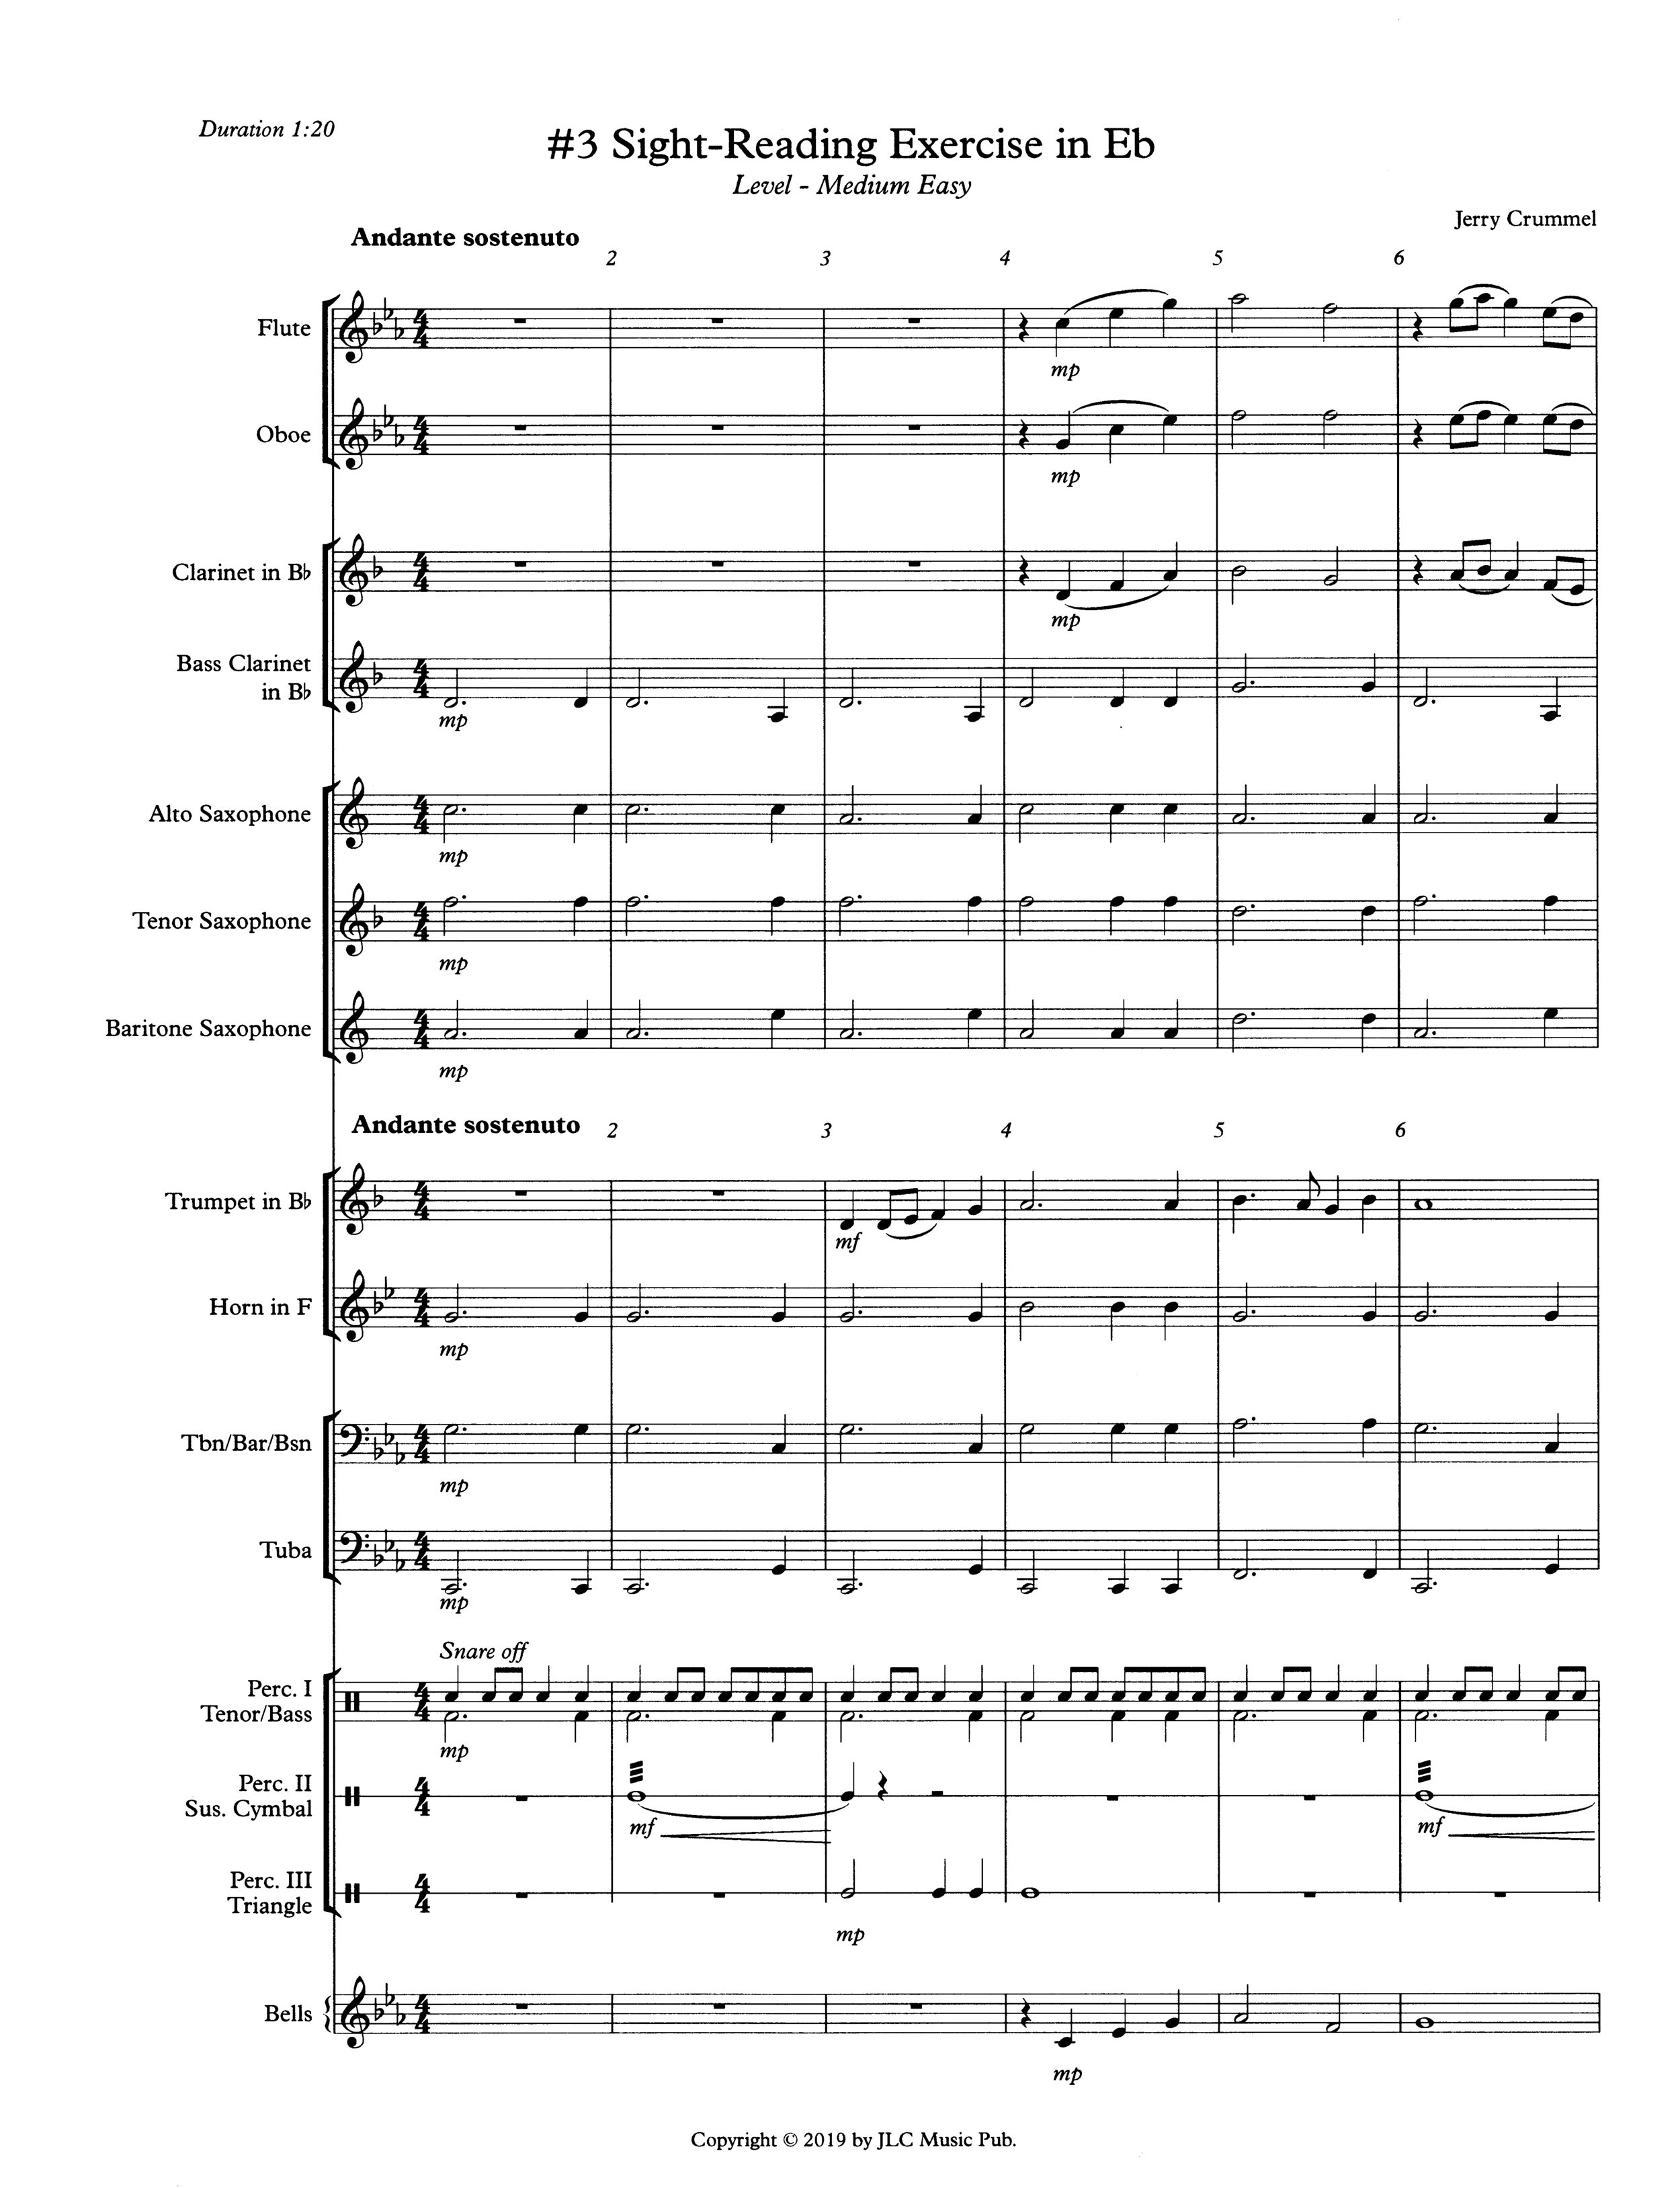 #3 Sight-Reading Exercise in Eb02122019.png